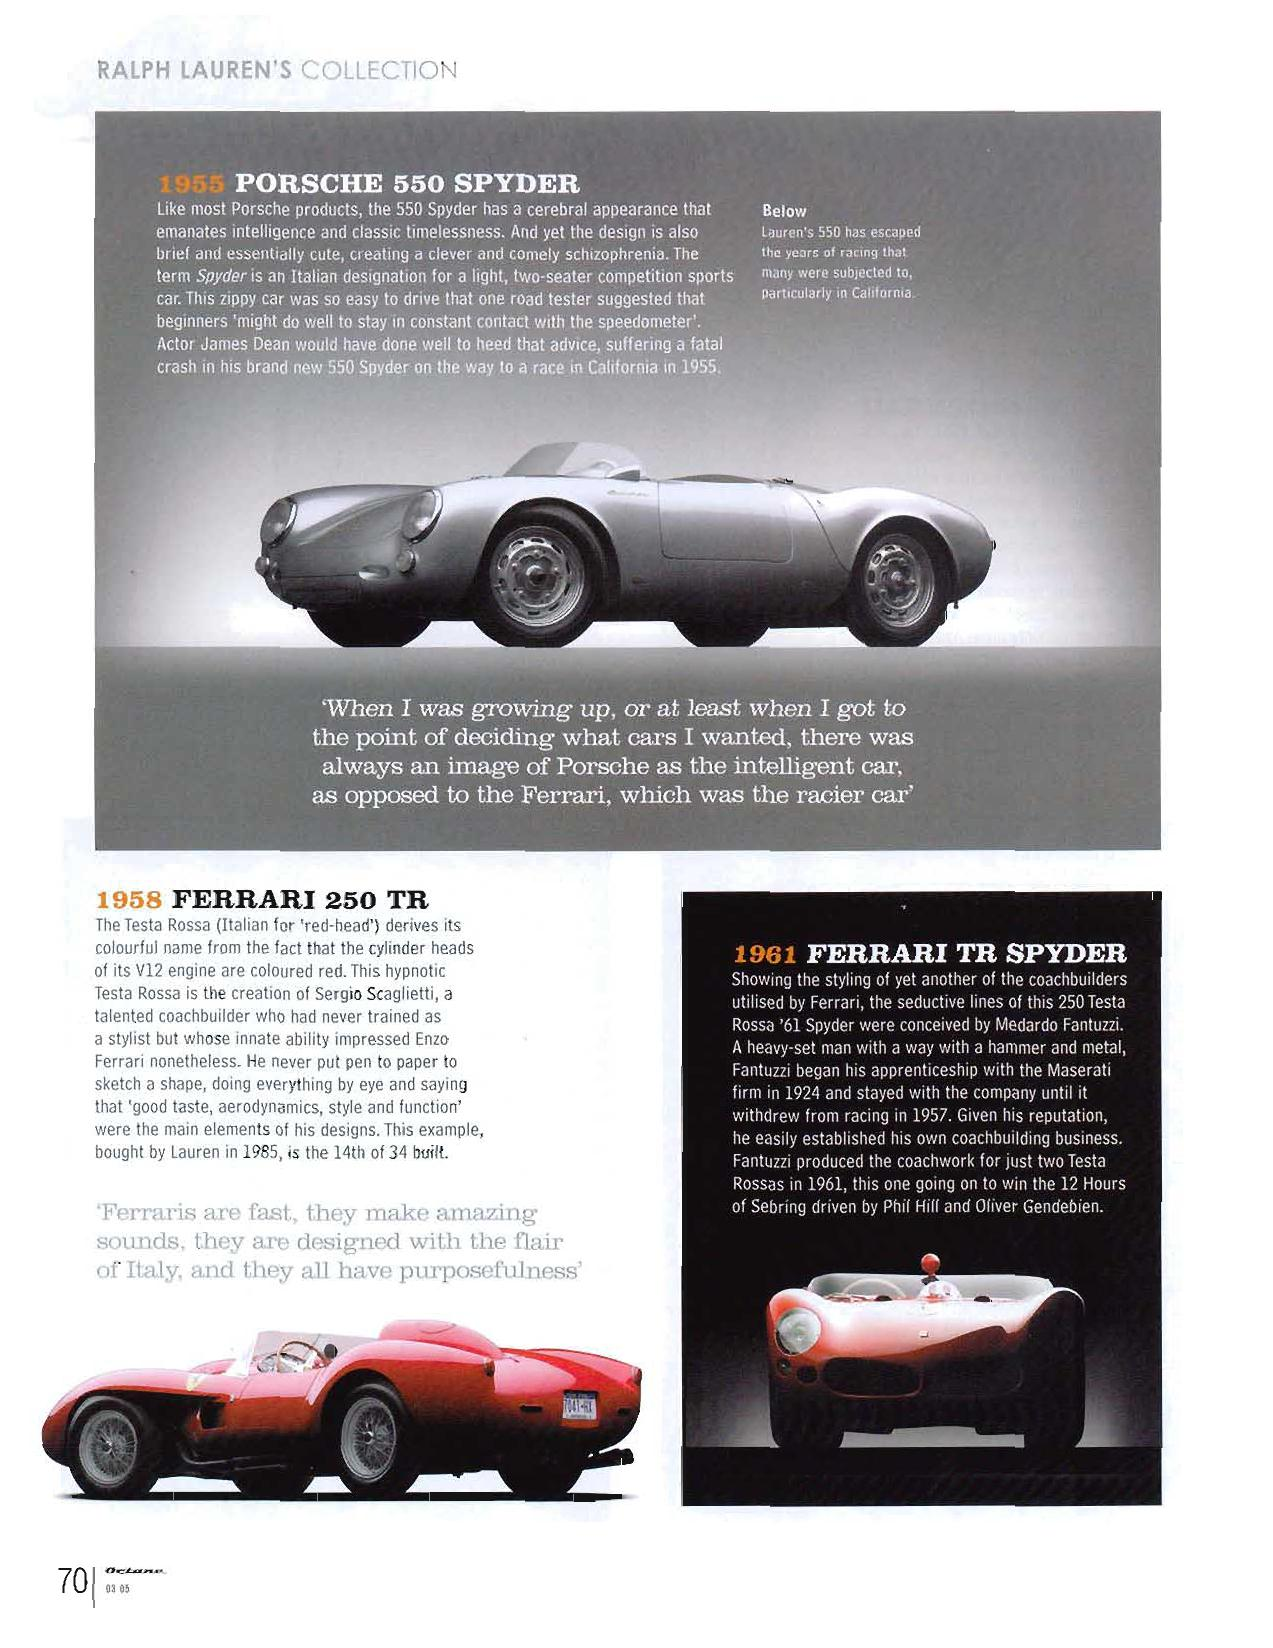 Ralph Laurens Rare Car collection at Ralphs Garage in